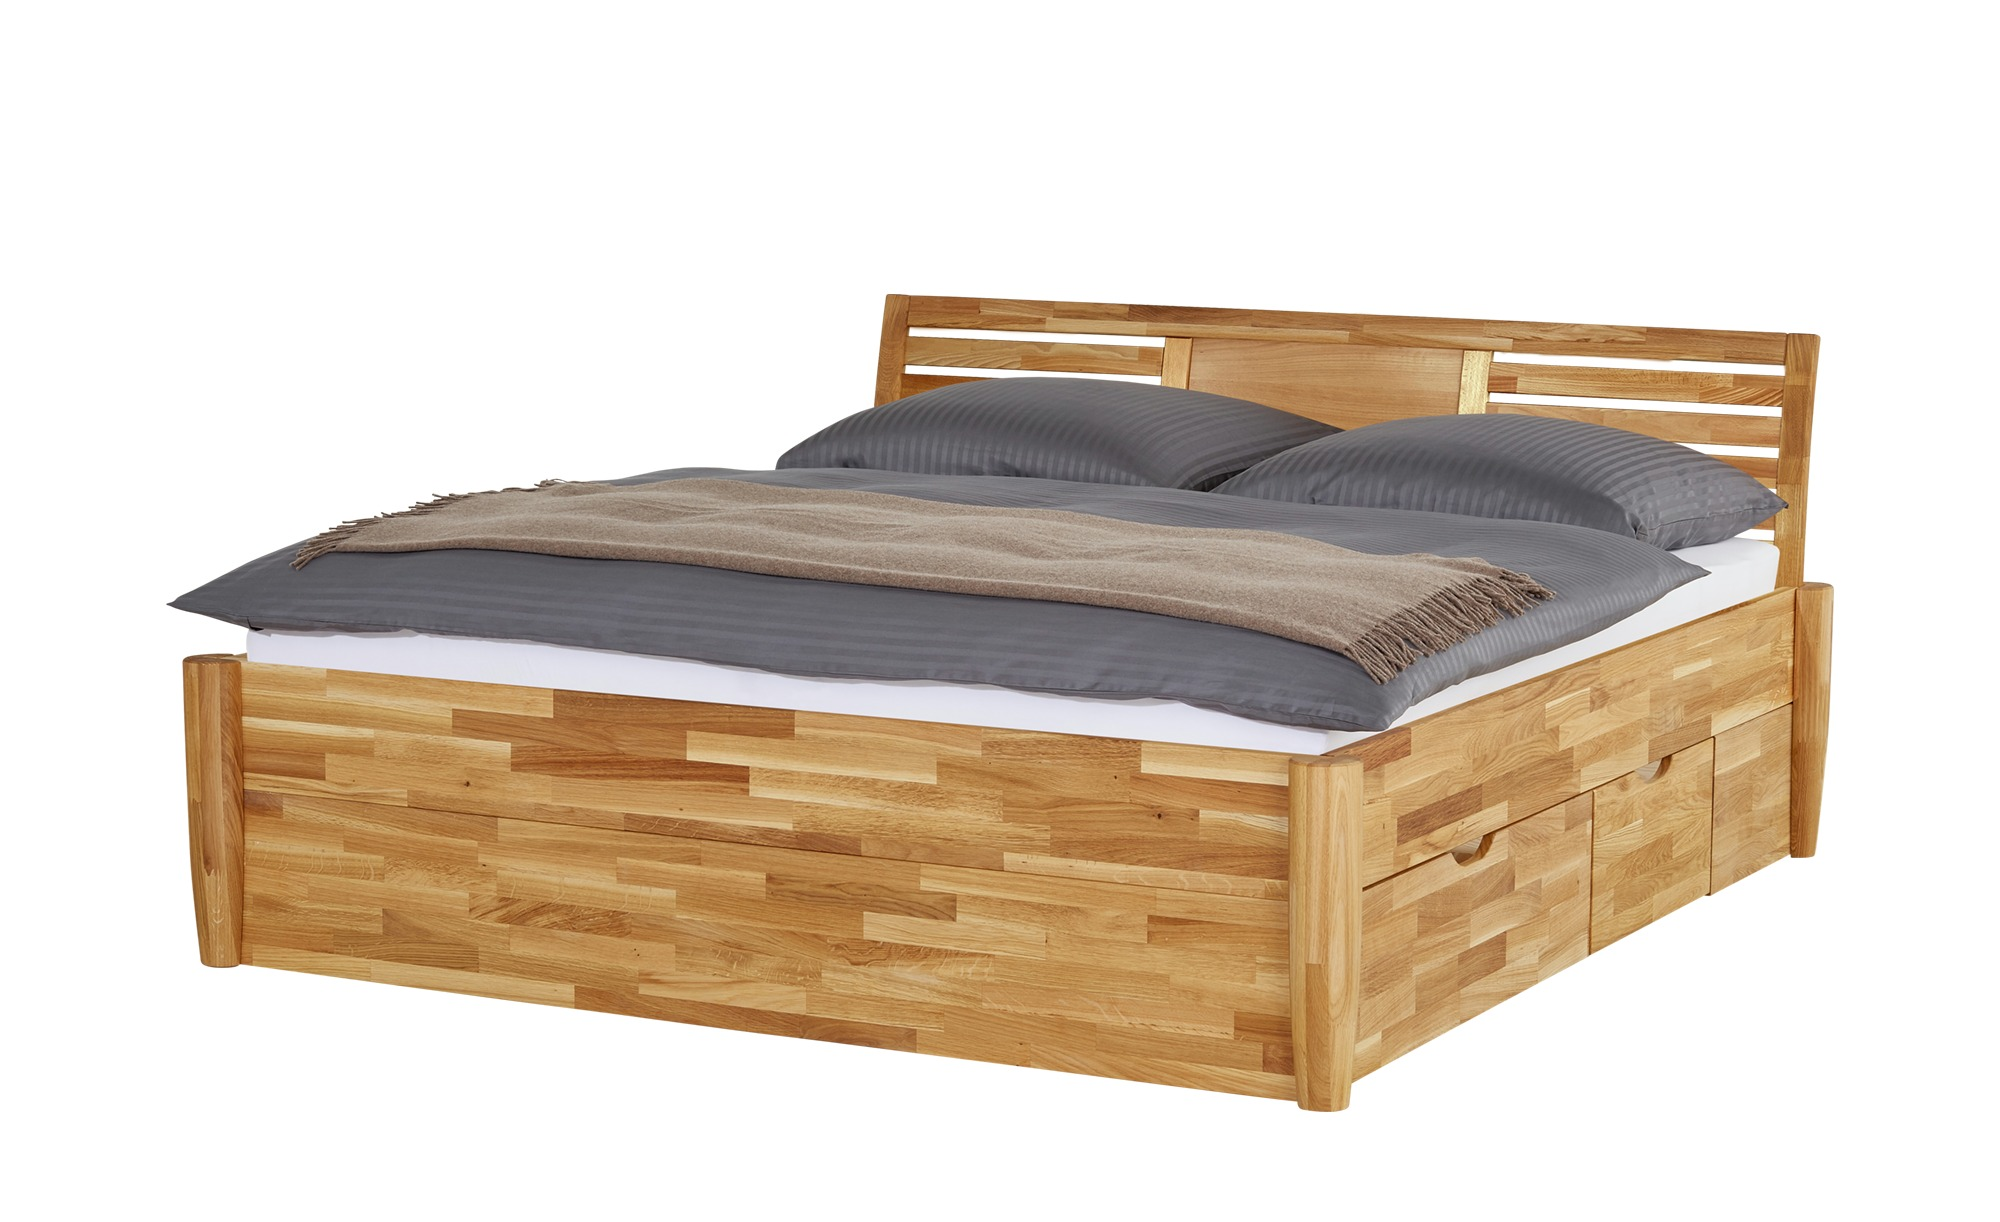 massivholz bettgestell timber breite 176 cm h he 93 cm holzfarben online kaufen bei woonio. Black Bedroom Furniture Sets. Home Design Ideas